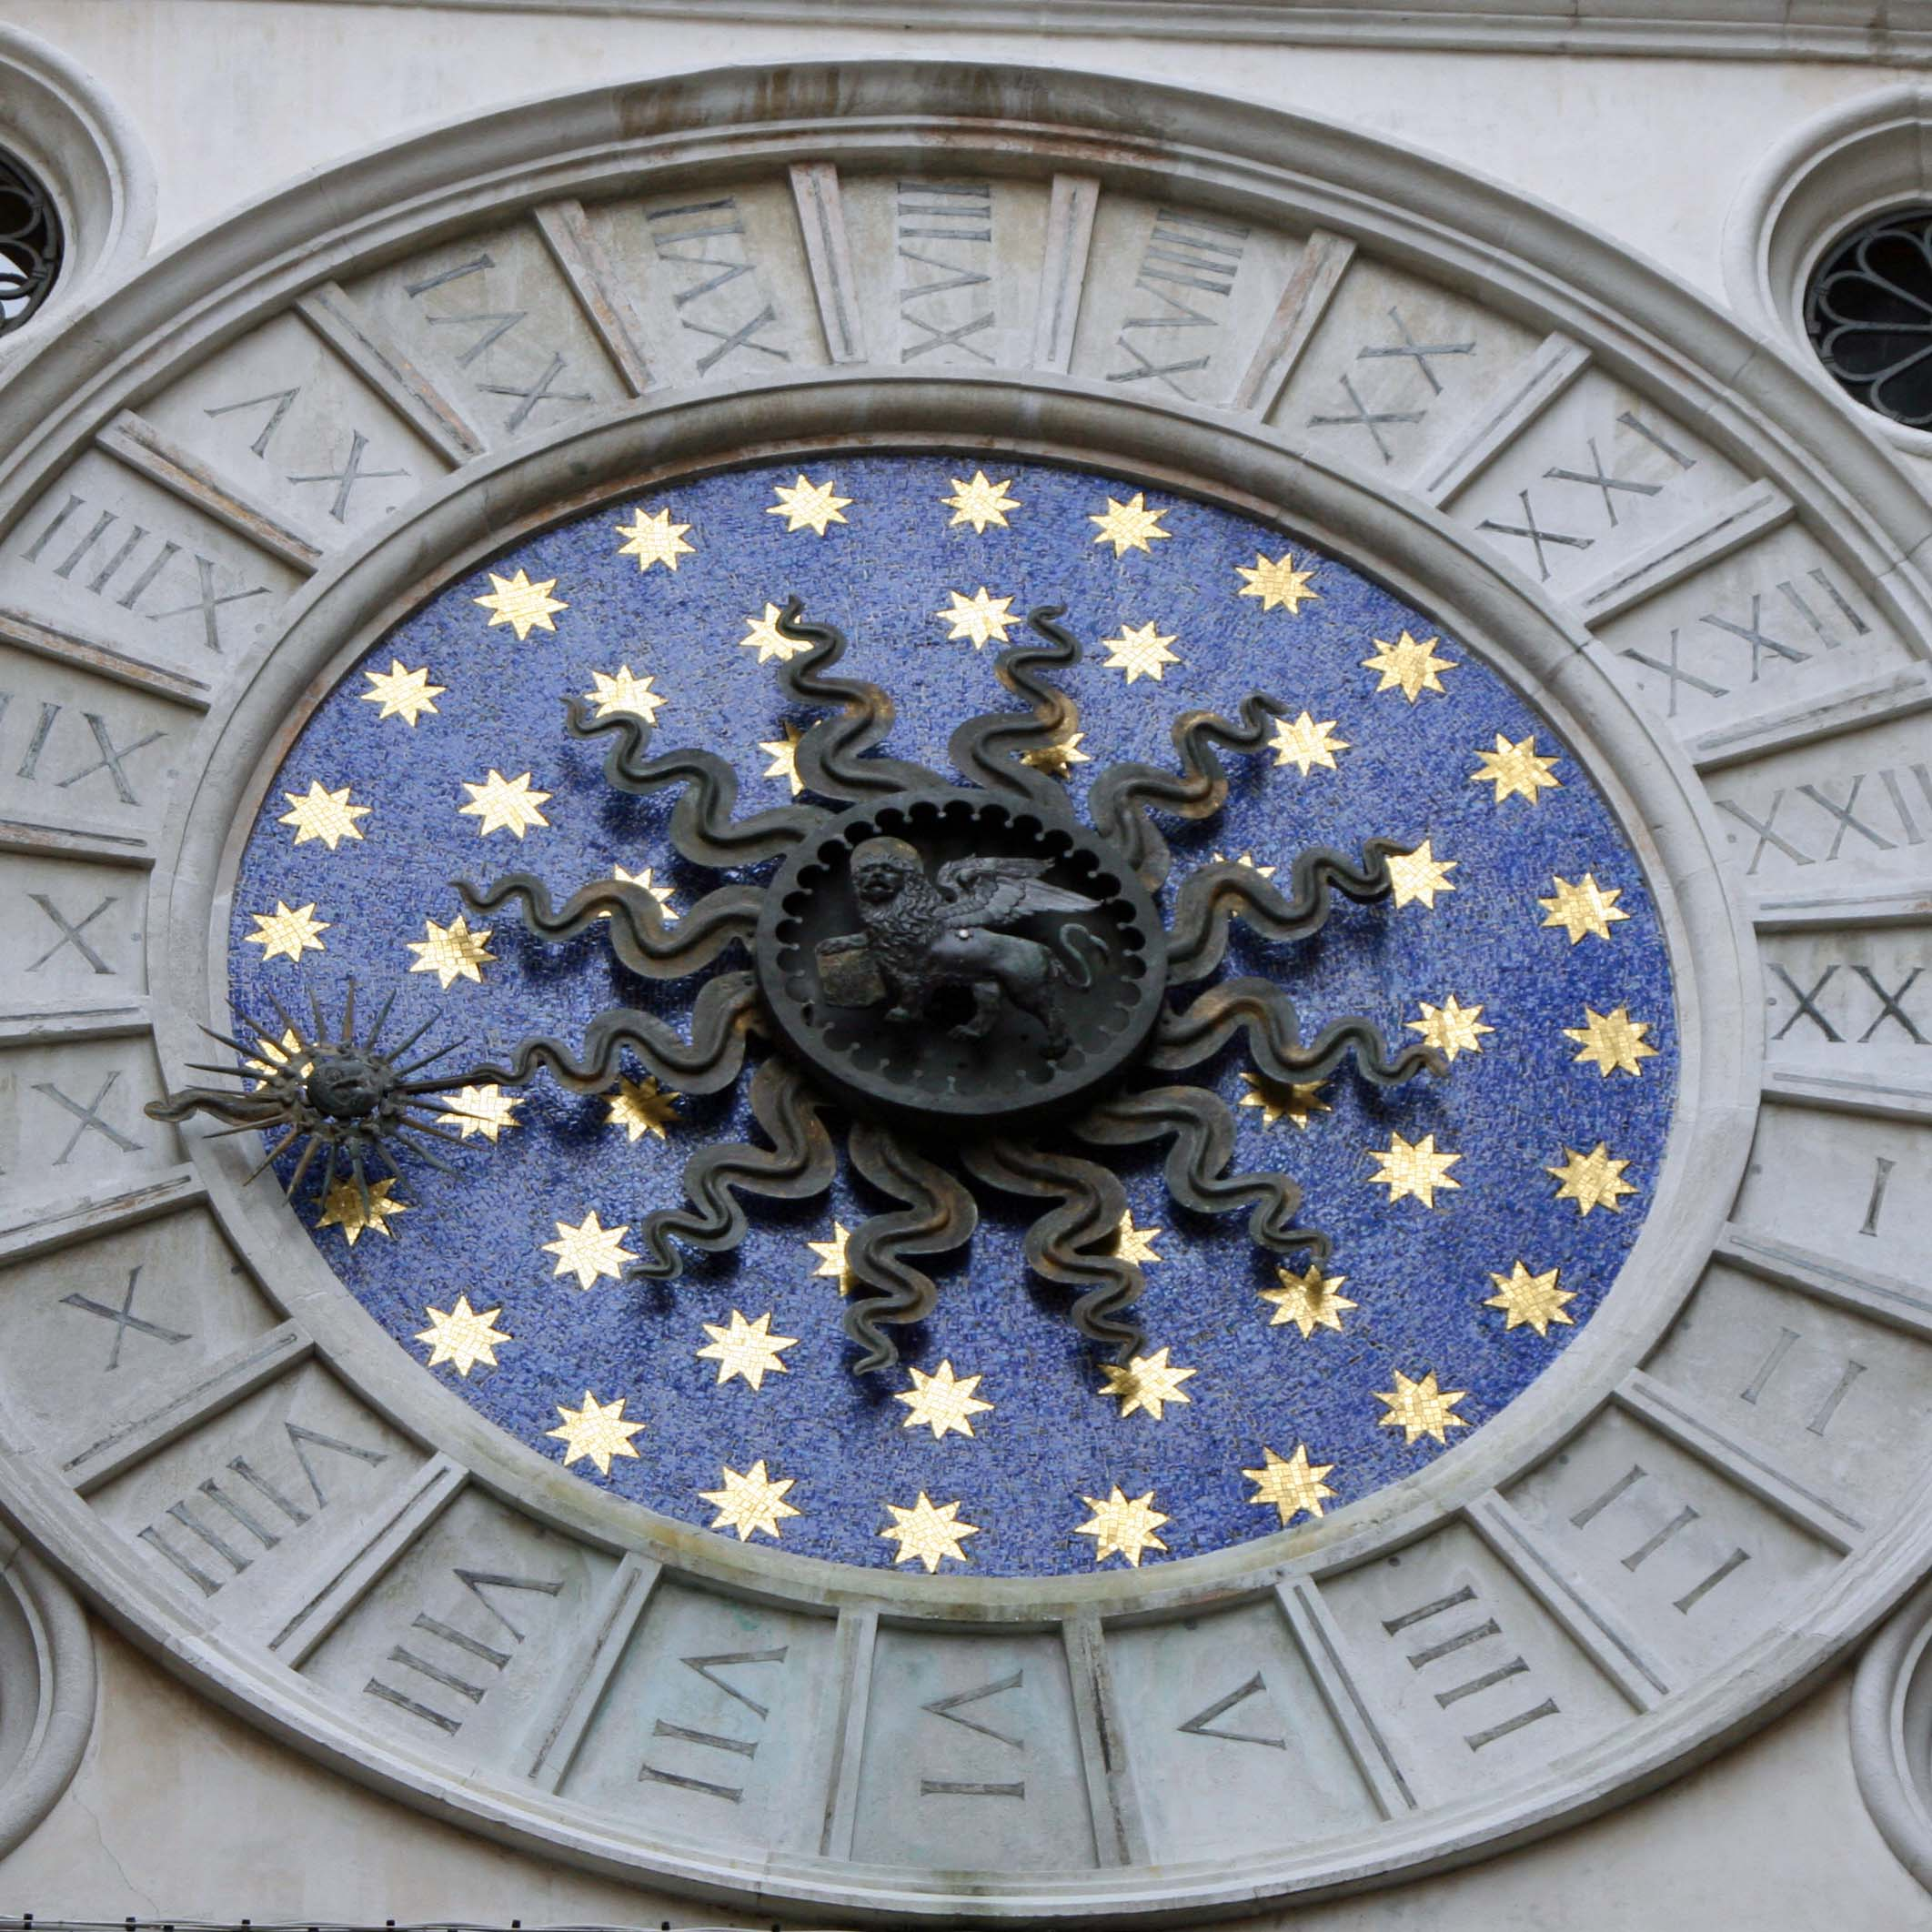 Starry roman numeral 24 hour clock found off of St. Marks Square in Venice Italy.